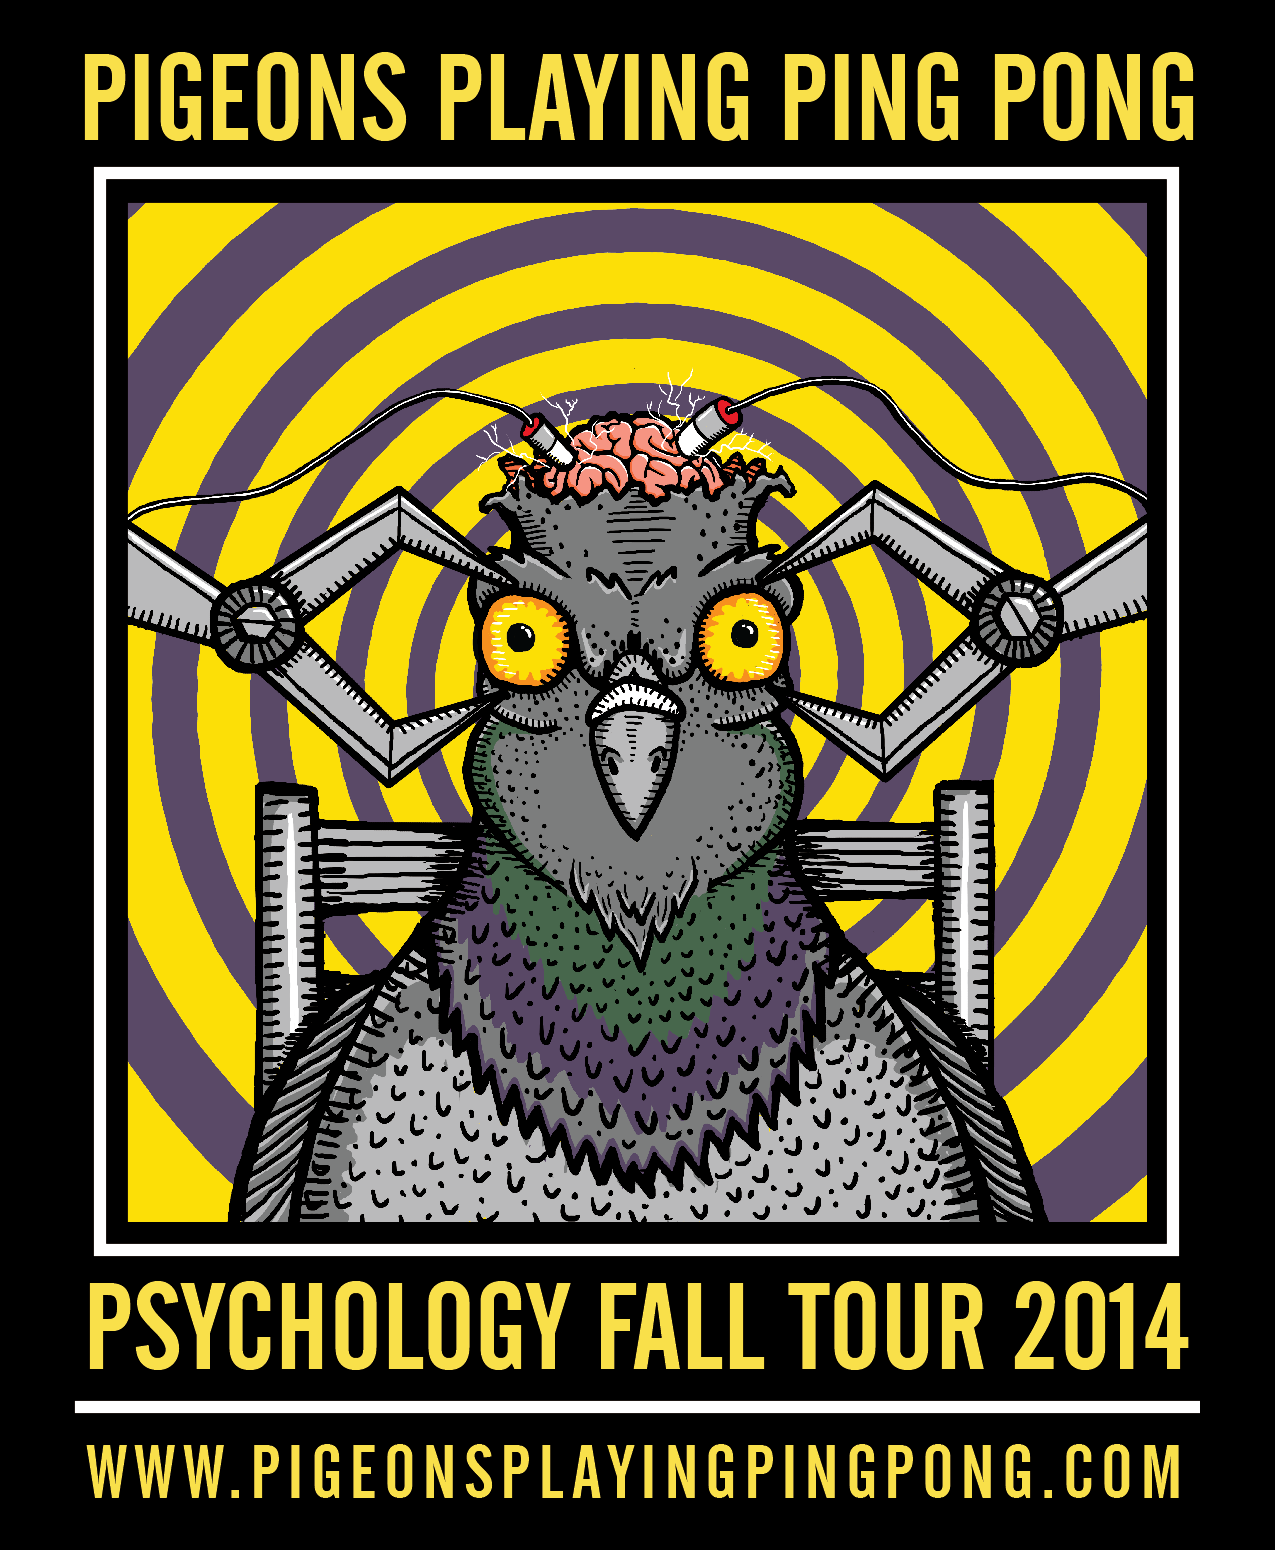 Pigeons Playing Ping Pong Announce Fall Tour